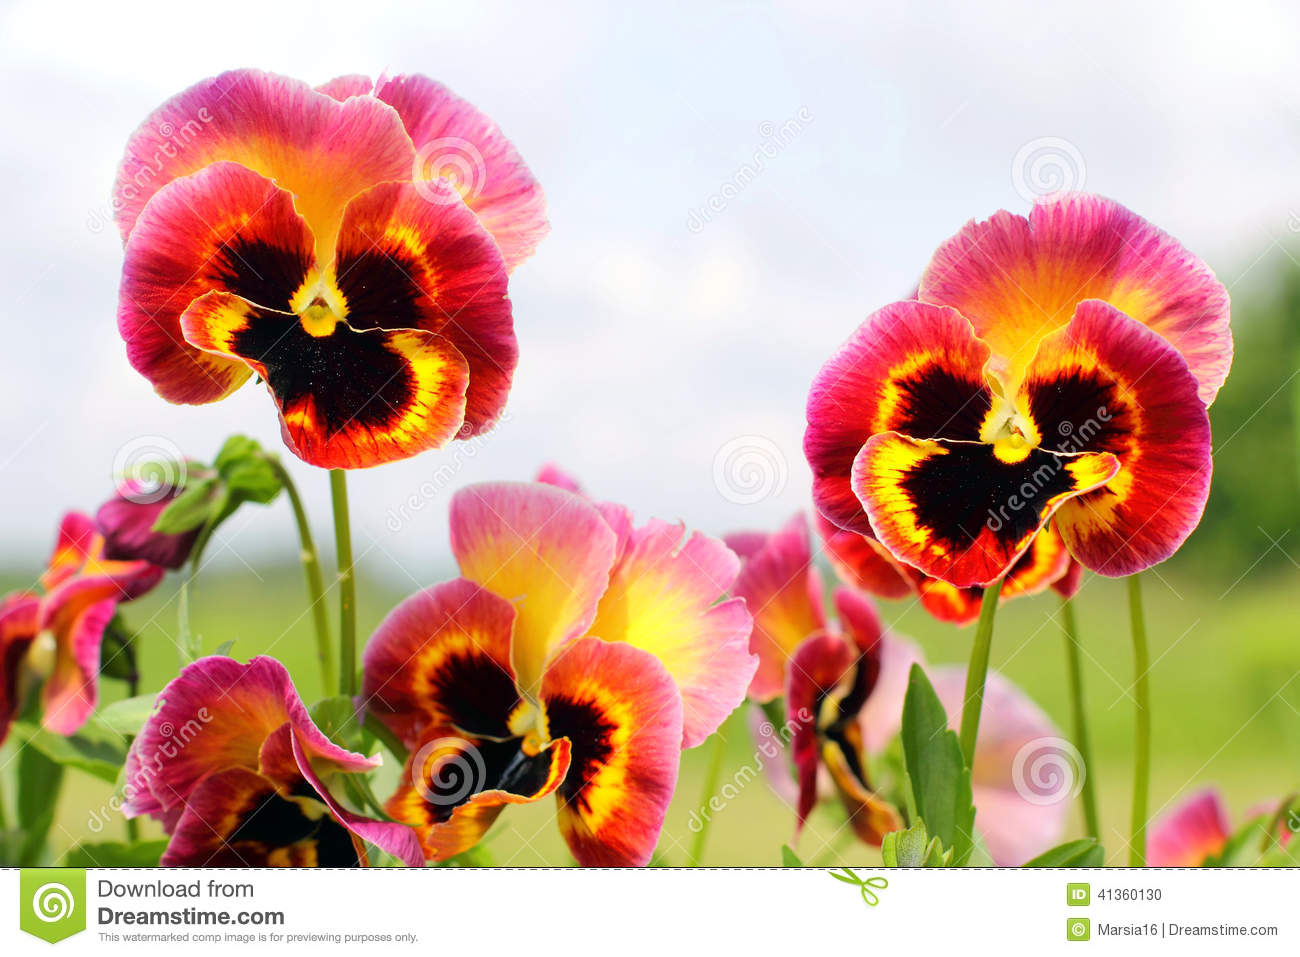 Pansy flowers pink yellow black closeup stock photo image of bloom download comp mightylinksfo